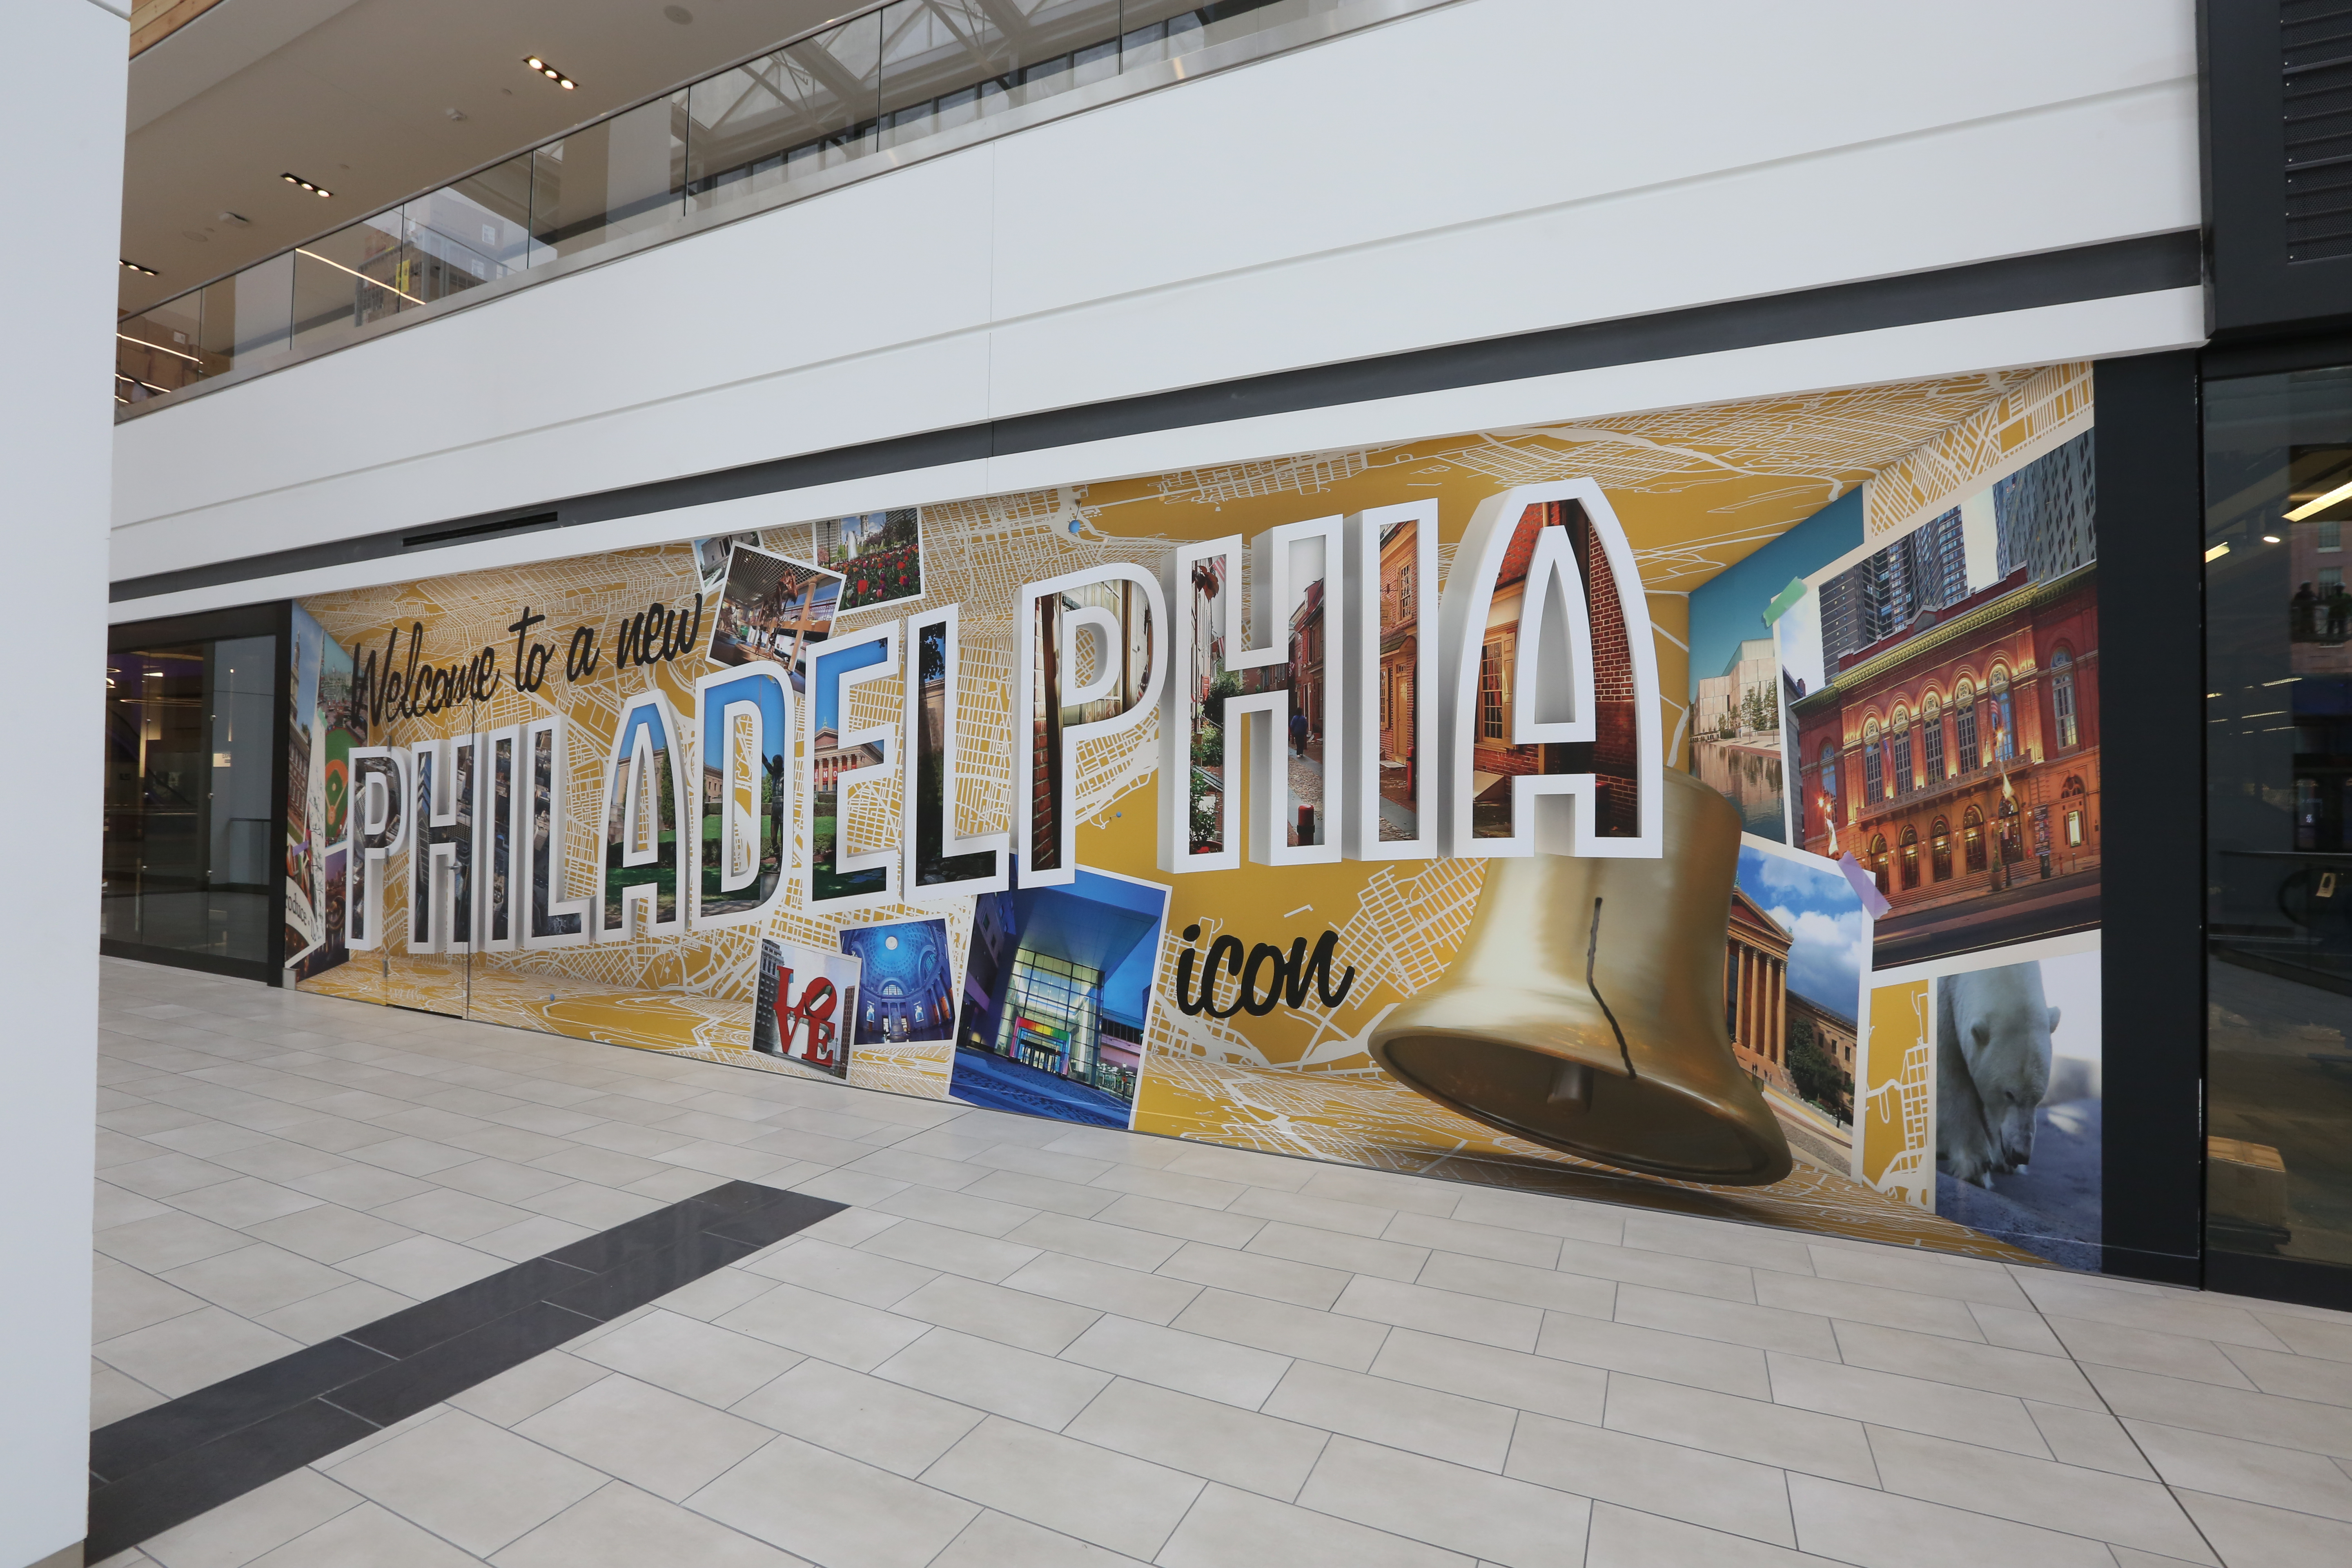 a mural that says philadelphia and has philly items